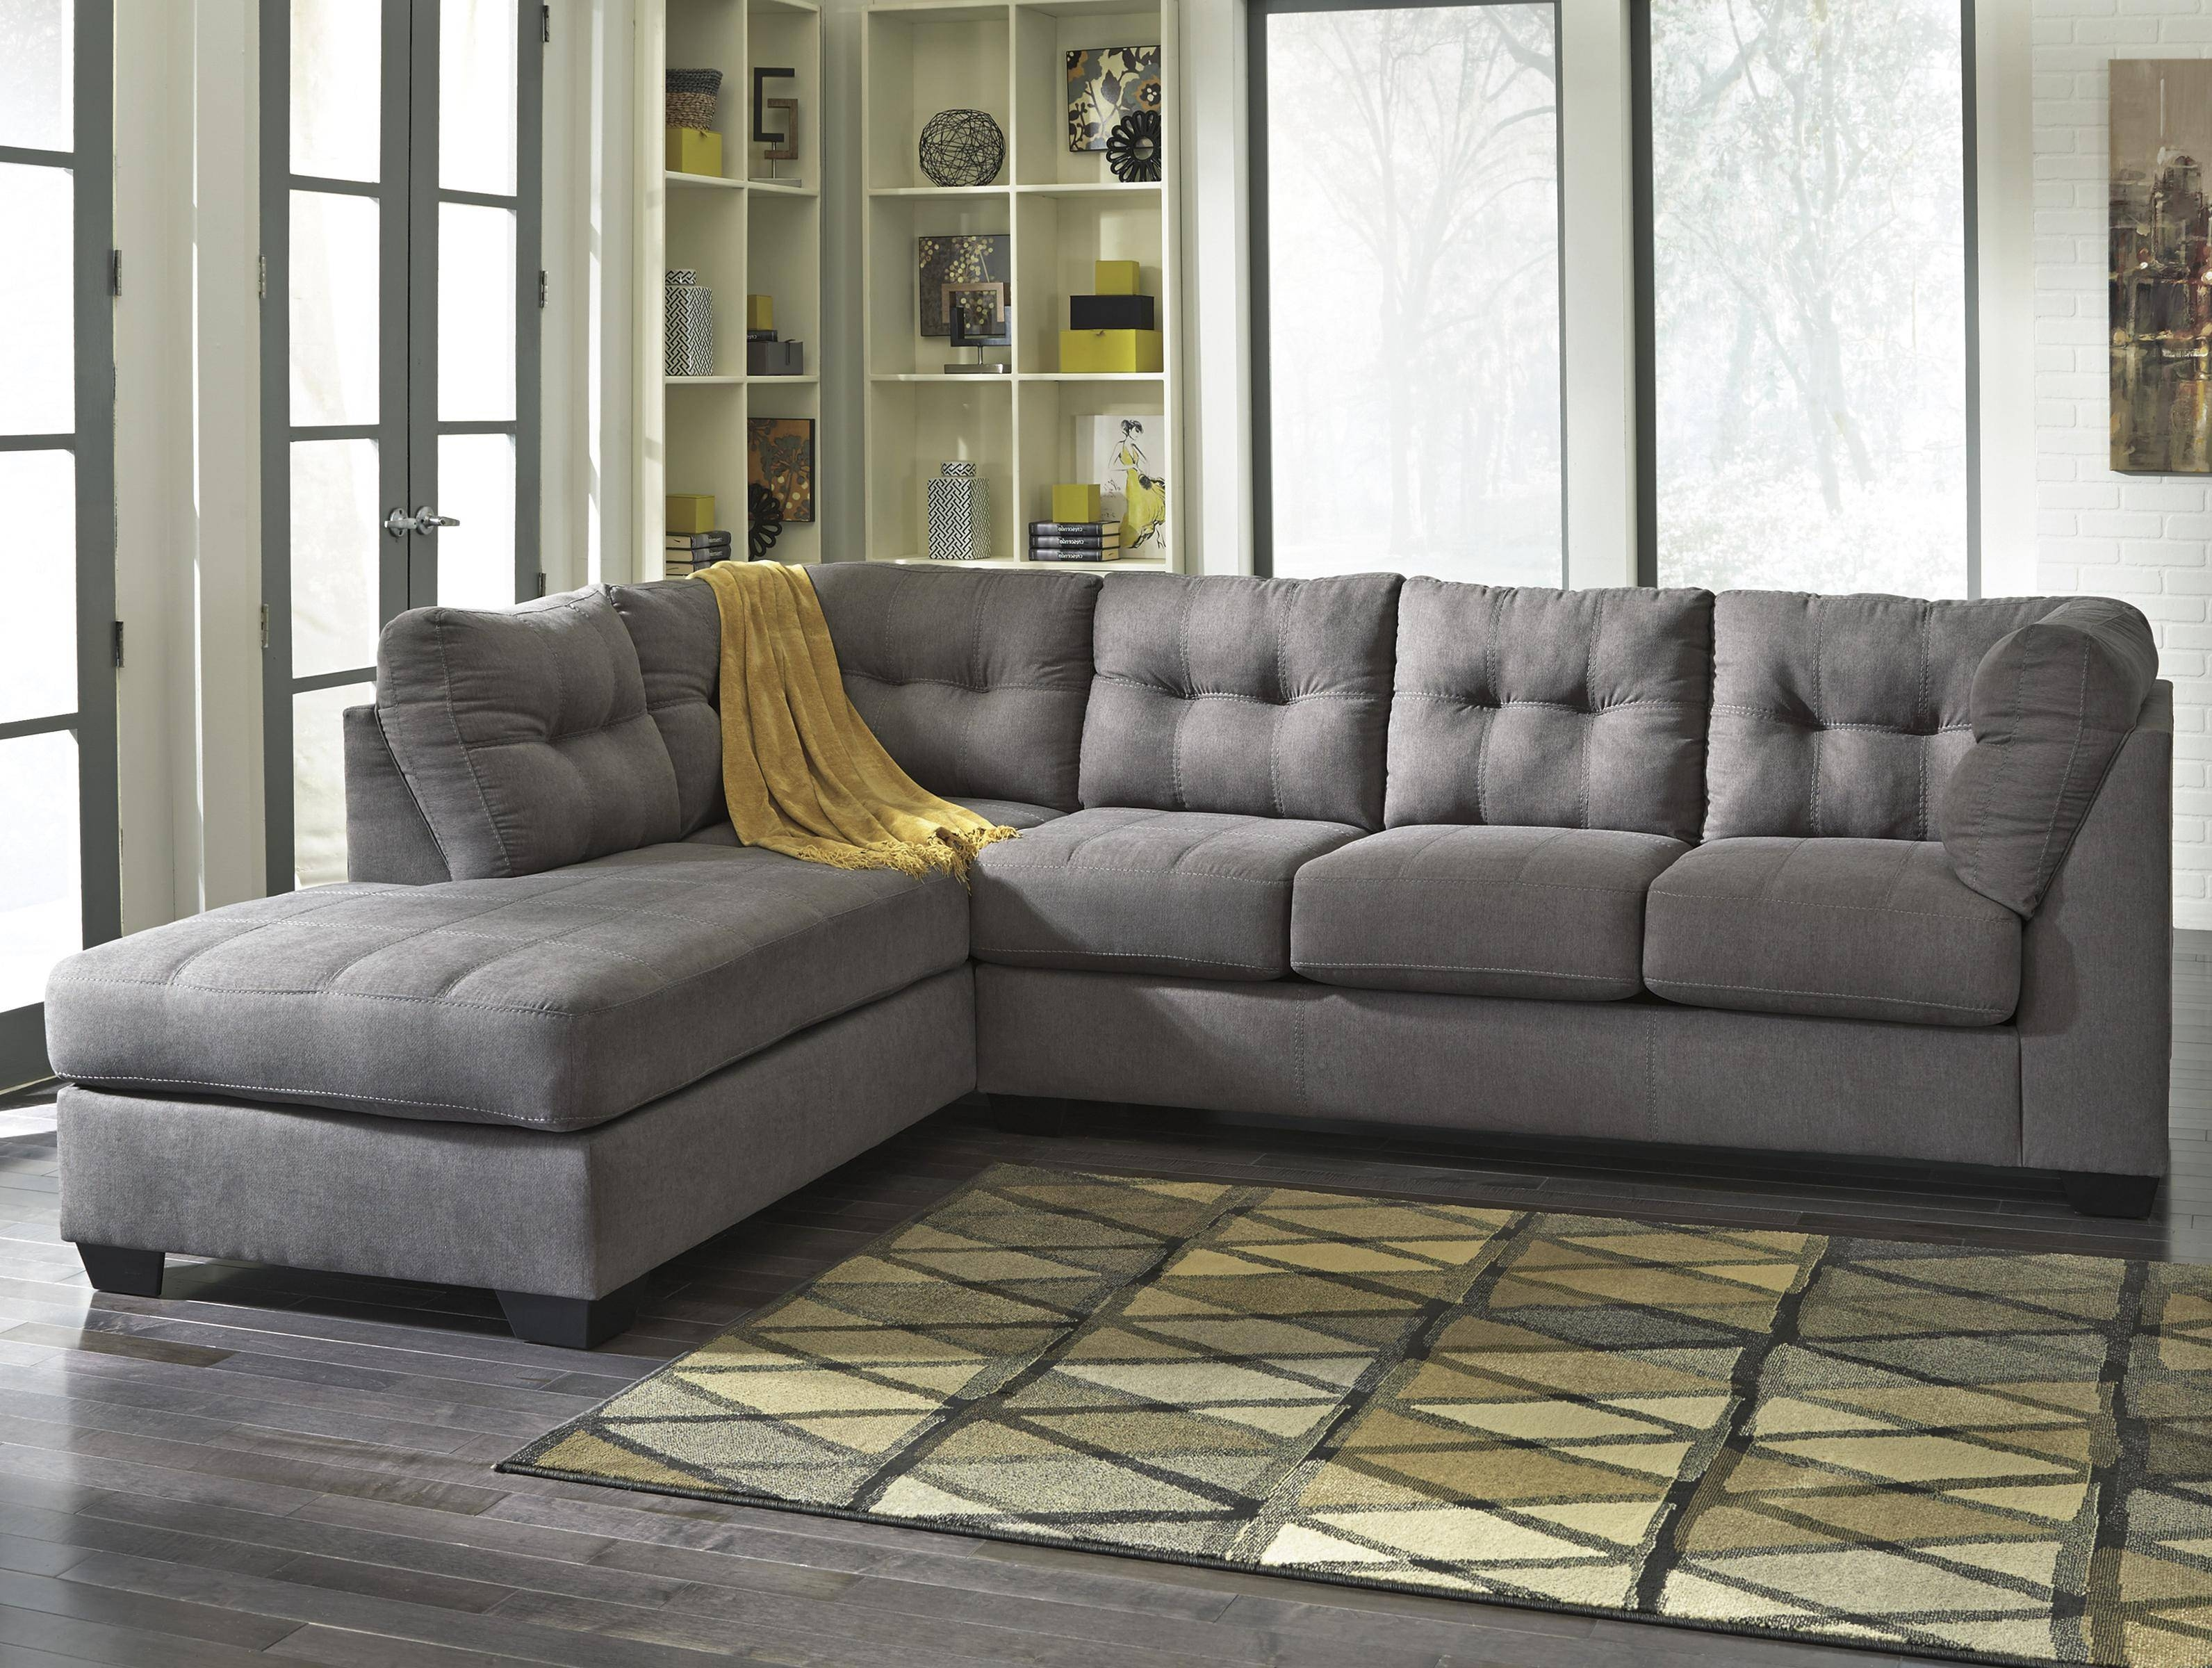 Benchcraft Maier – Charcoal 2 Piece Sectional W/ Sleeper Sofa Inside Sectional Sofa With 2 Chaises (View 8 of 30)